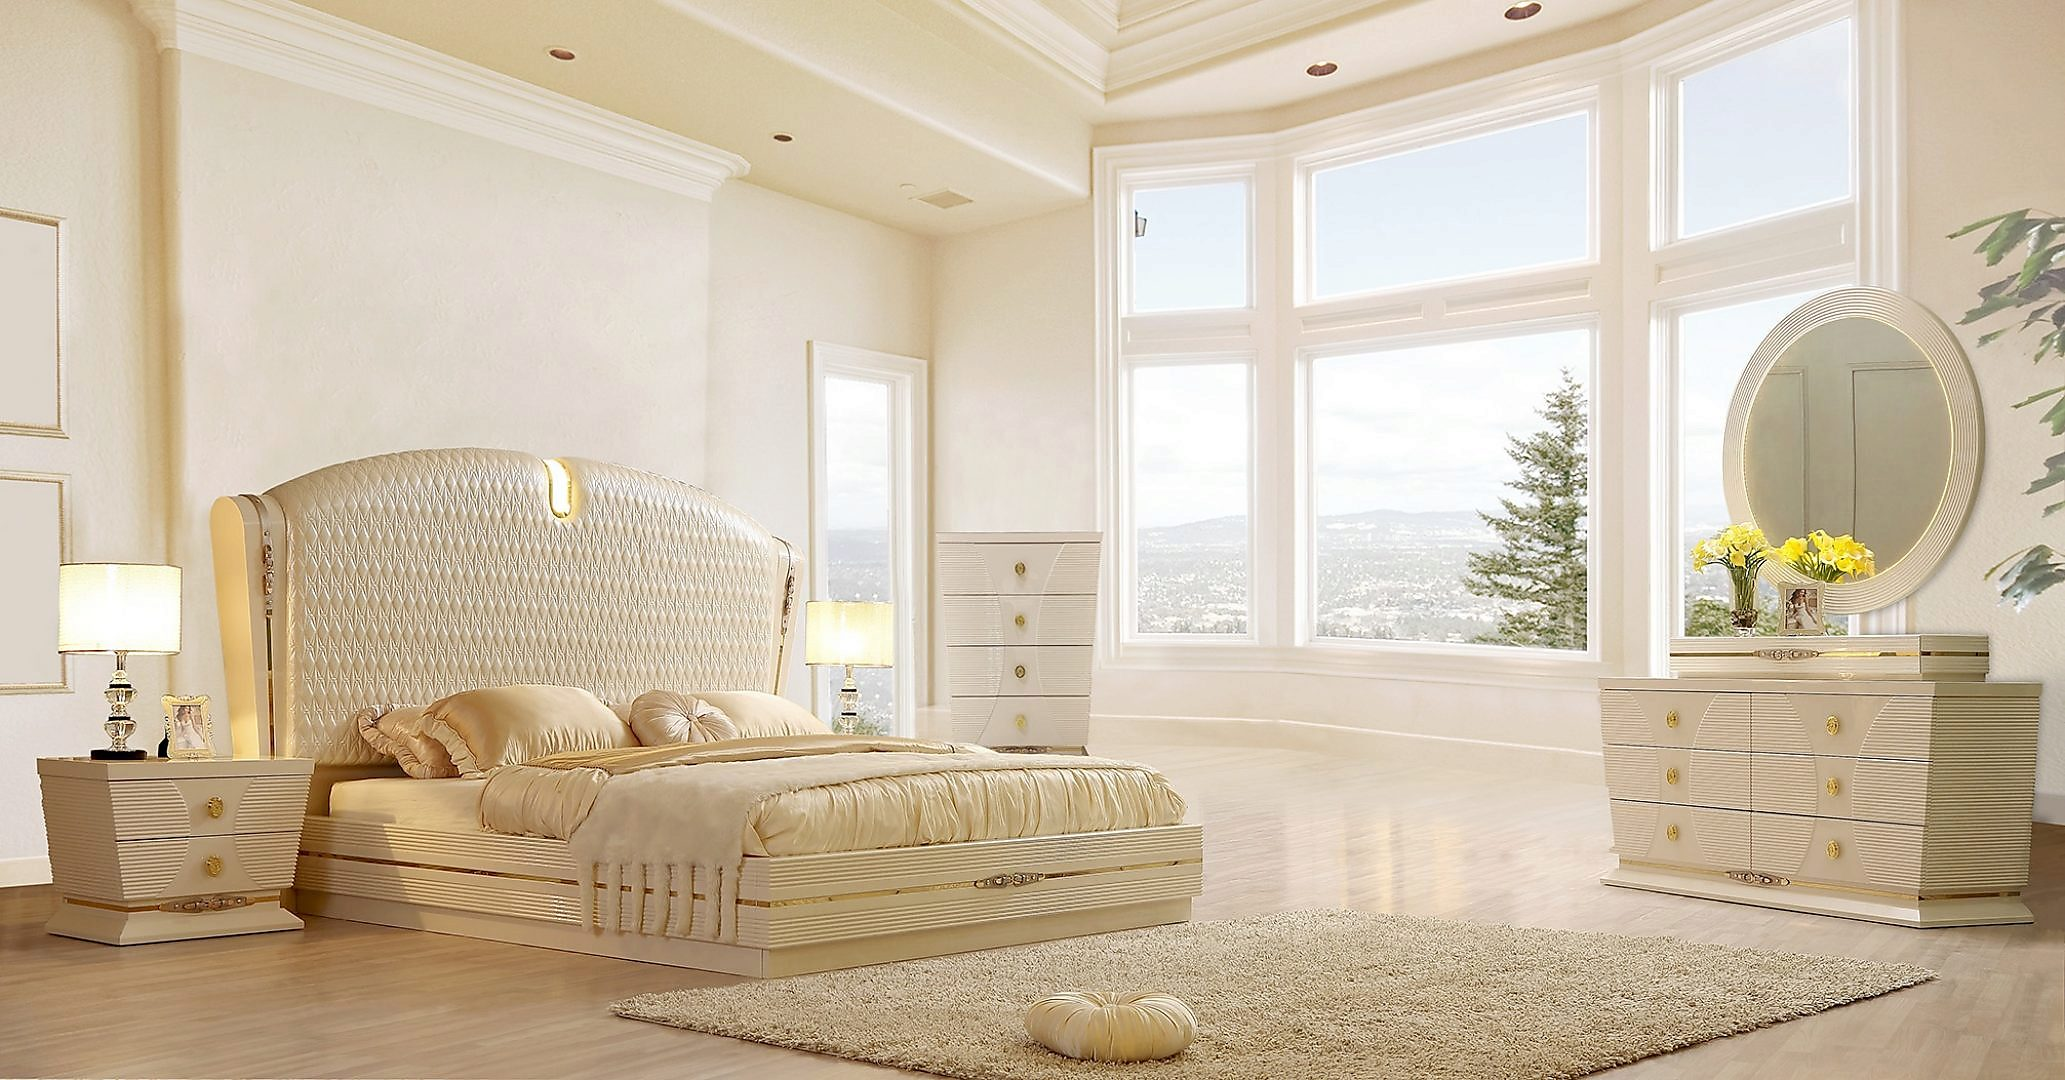 Traditional Eastern King Bedroom Set 5 PCS in White Leather Traditional Style Homey Design HD-914